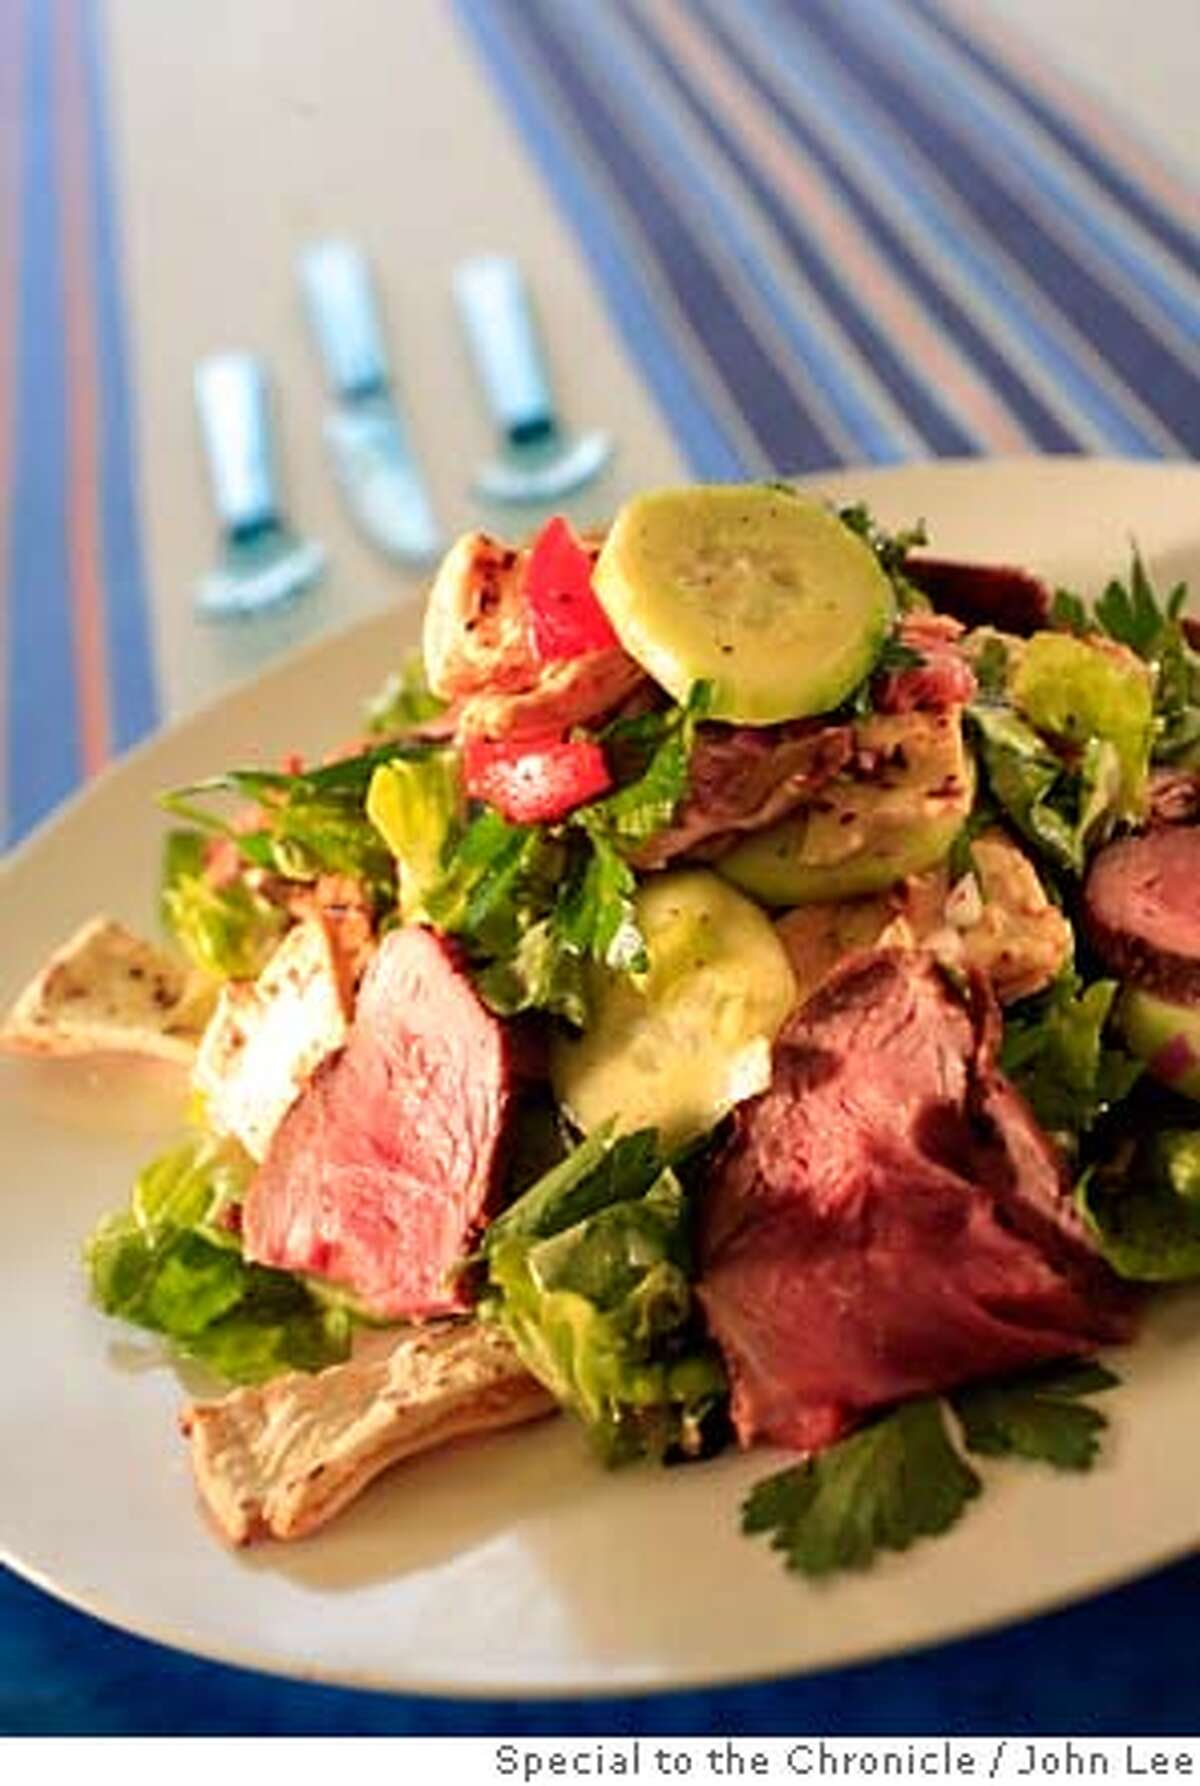 PICNIC23_RECIPES_03_JOHNLEE.JPG Fatoosh Salad. By JOHN LEE/SPECIAL TO THE CHRONICLE